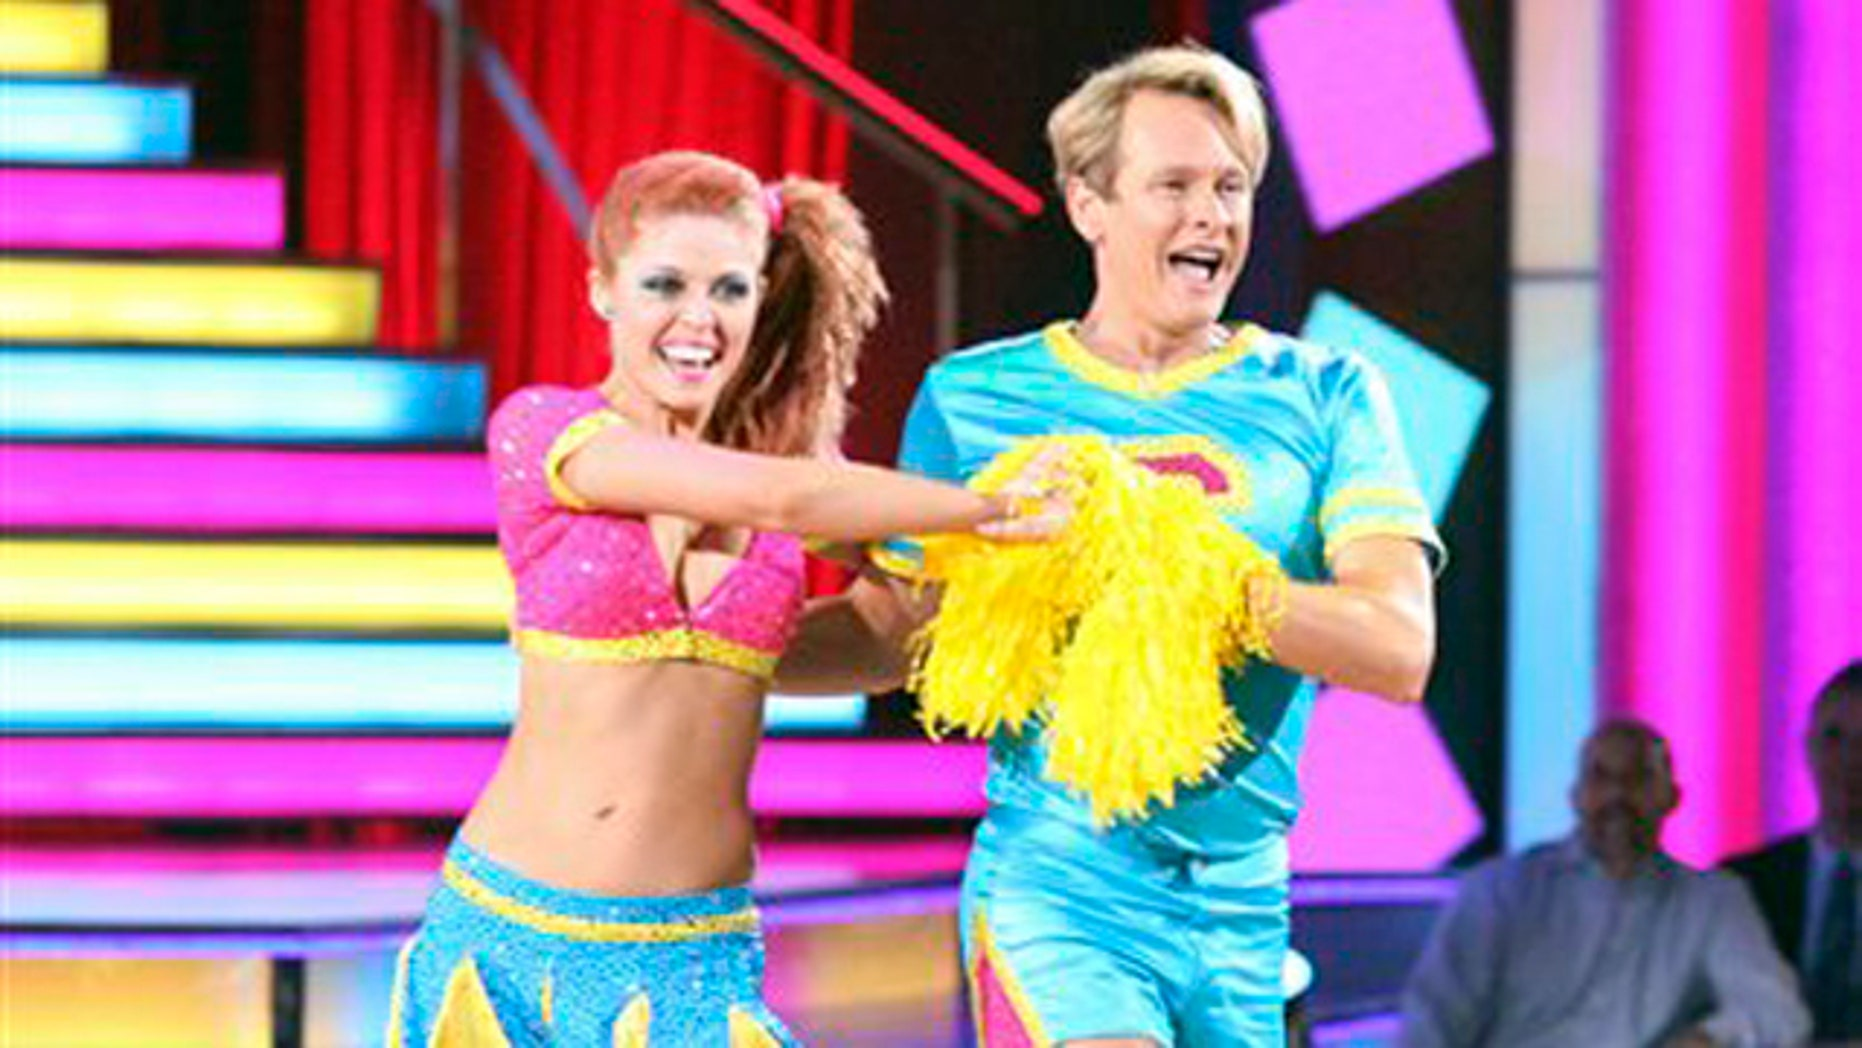 """In this Oct. 17, 2011 photo, TV personality and fashion expert Carson Kressley, right, and his partner Anna Trebunskaya perform in the celebrity dance competition series """"Dancing with the Stars,"""" in Los Angeles."""